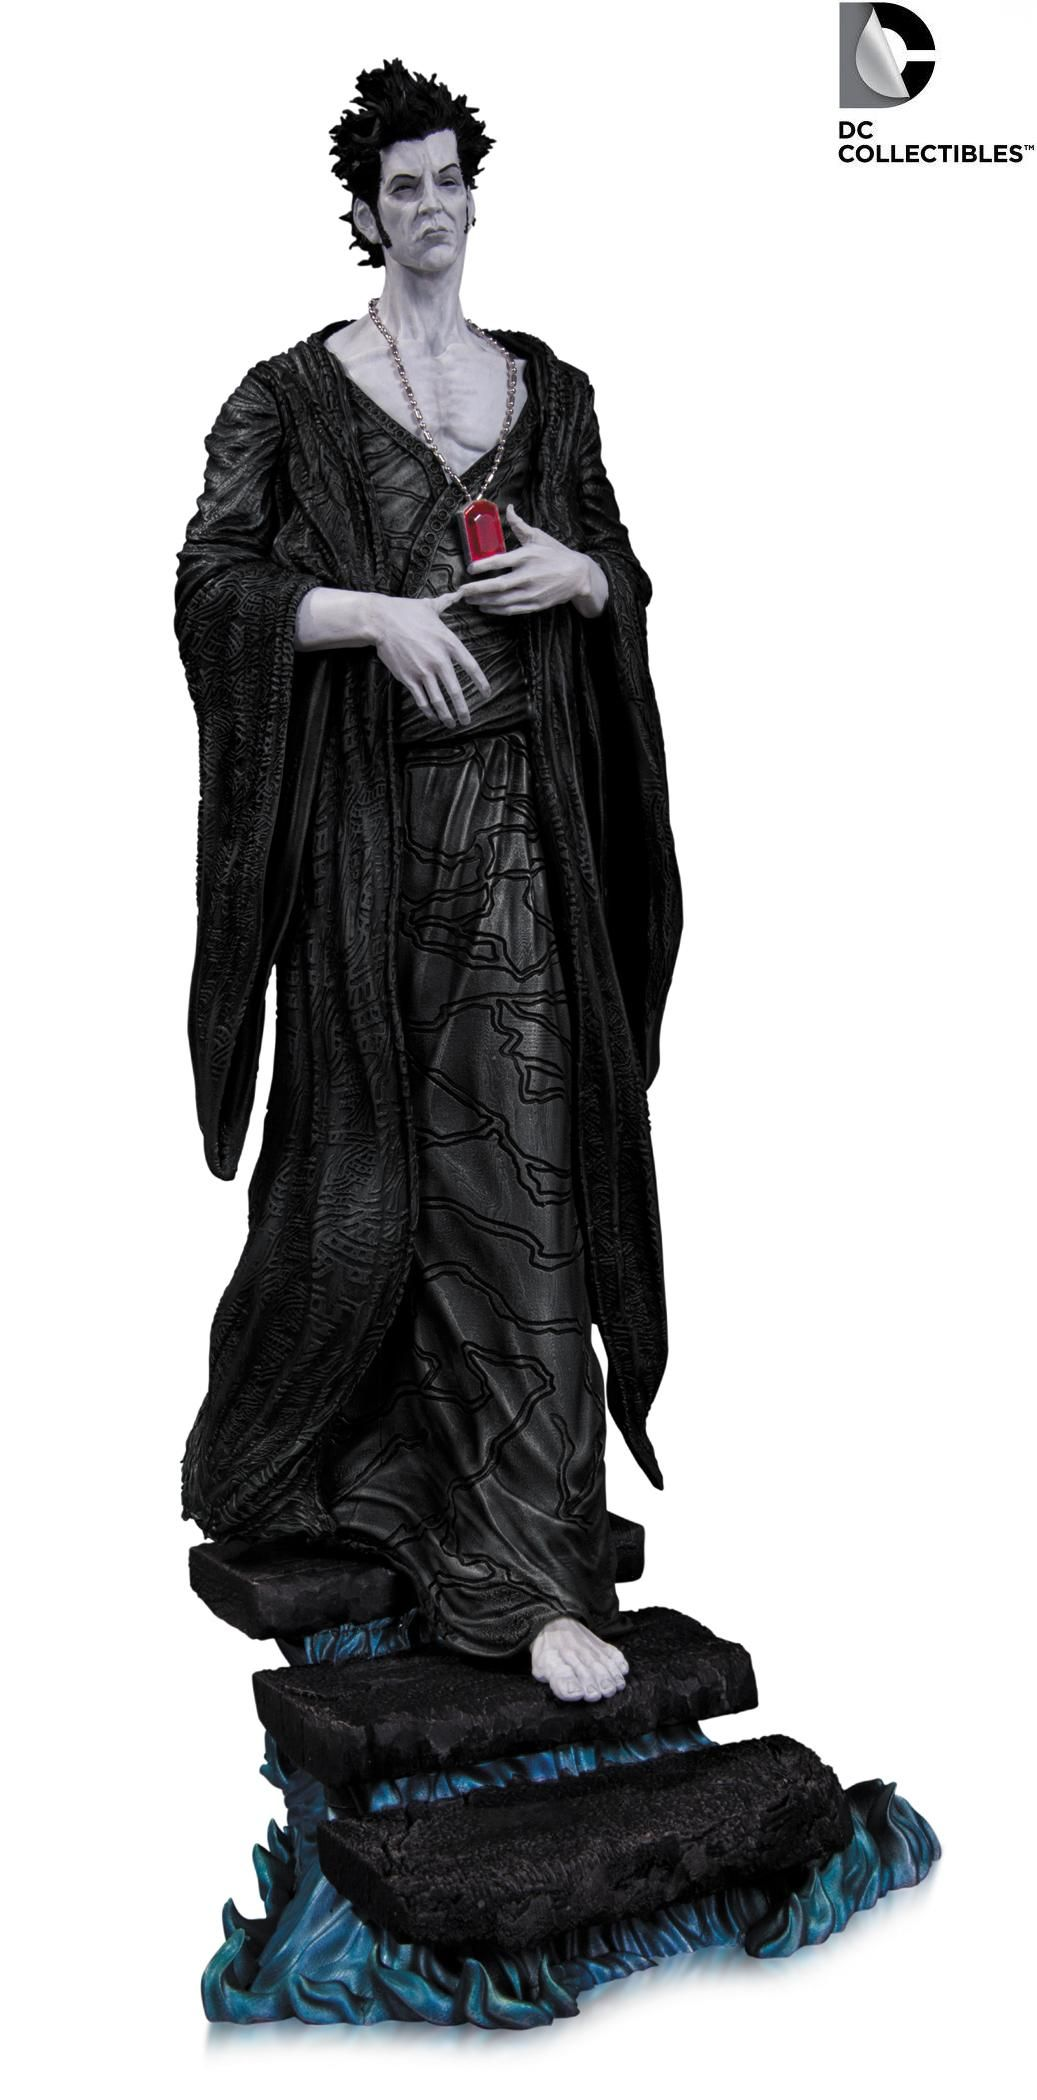 Overture Statue DC Collectibles The Sandman